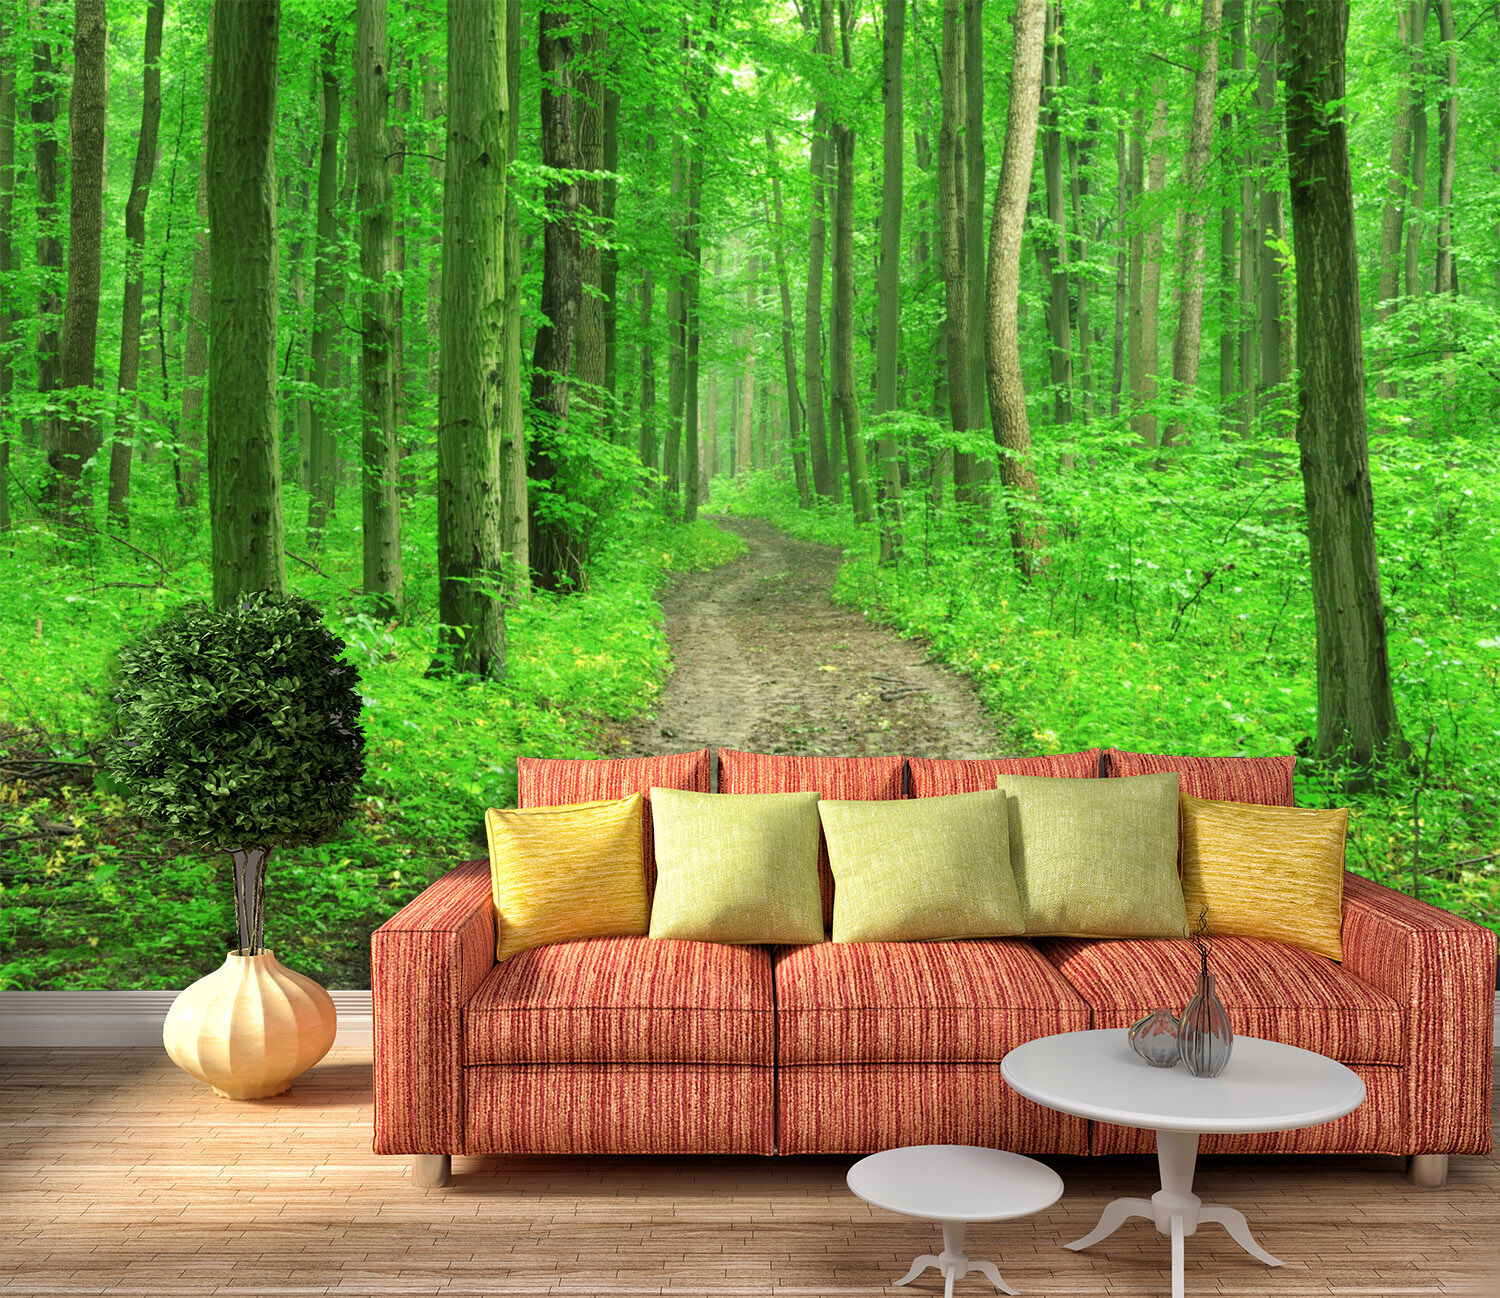 3D Green forest 5434 Wall Paper Wall Print Decal Wall Deco Indoor Wall Murals